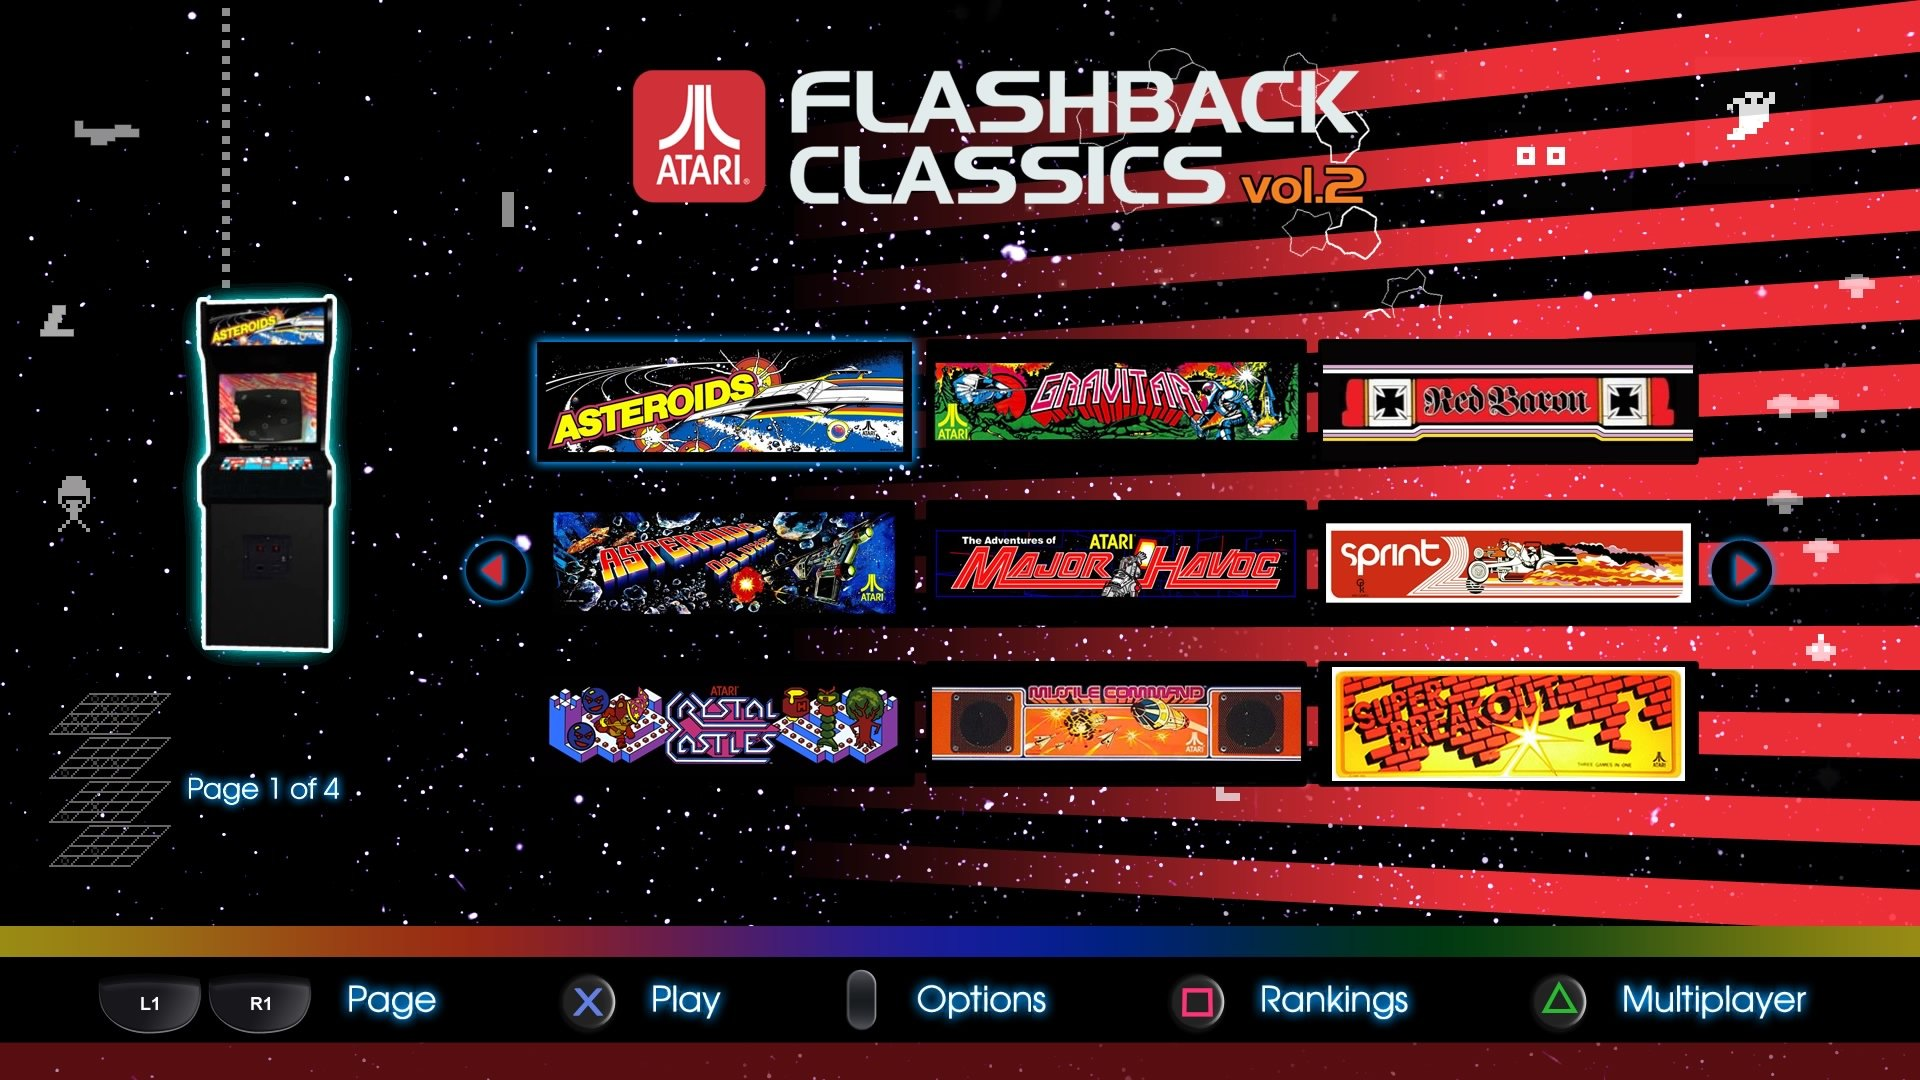 Amazon.com: Atari Flashback Classics: Volume 2: Video Games